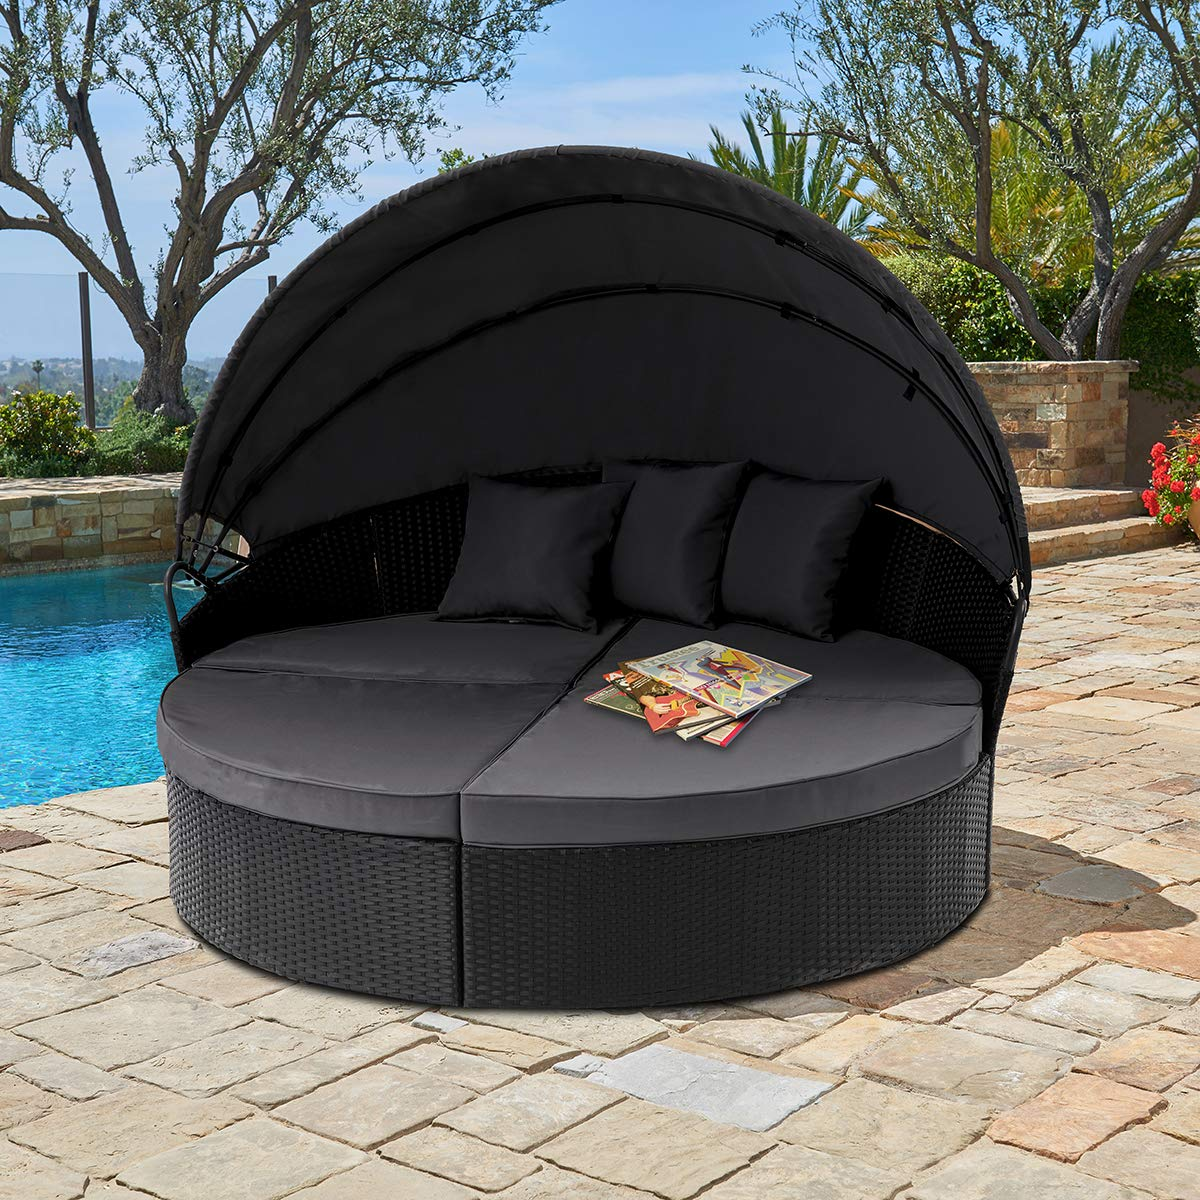 suncrown outdoor patio round retractable canopy daybed black wicker furniture clamshell sectional seating w washable cushions patio backyard